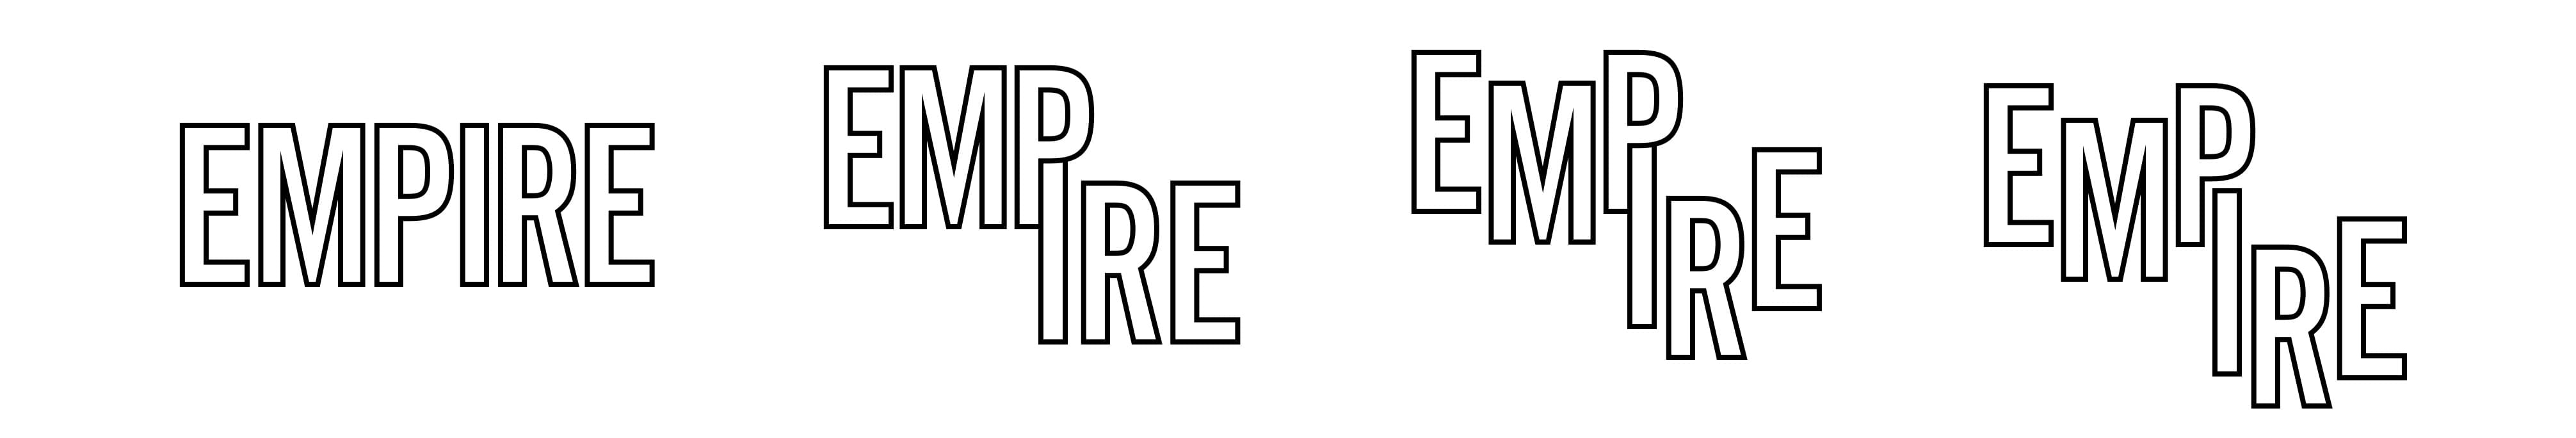 A series of logos for Empire that show a variety of block text with a black outline.